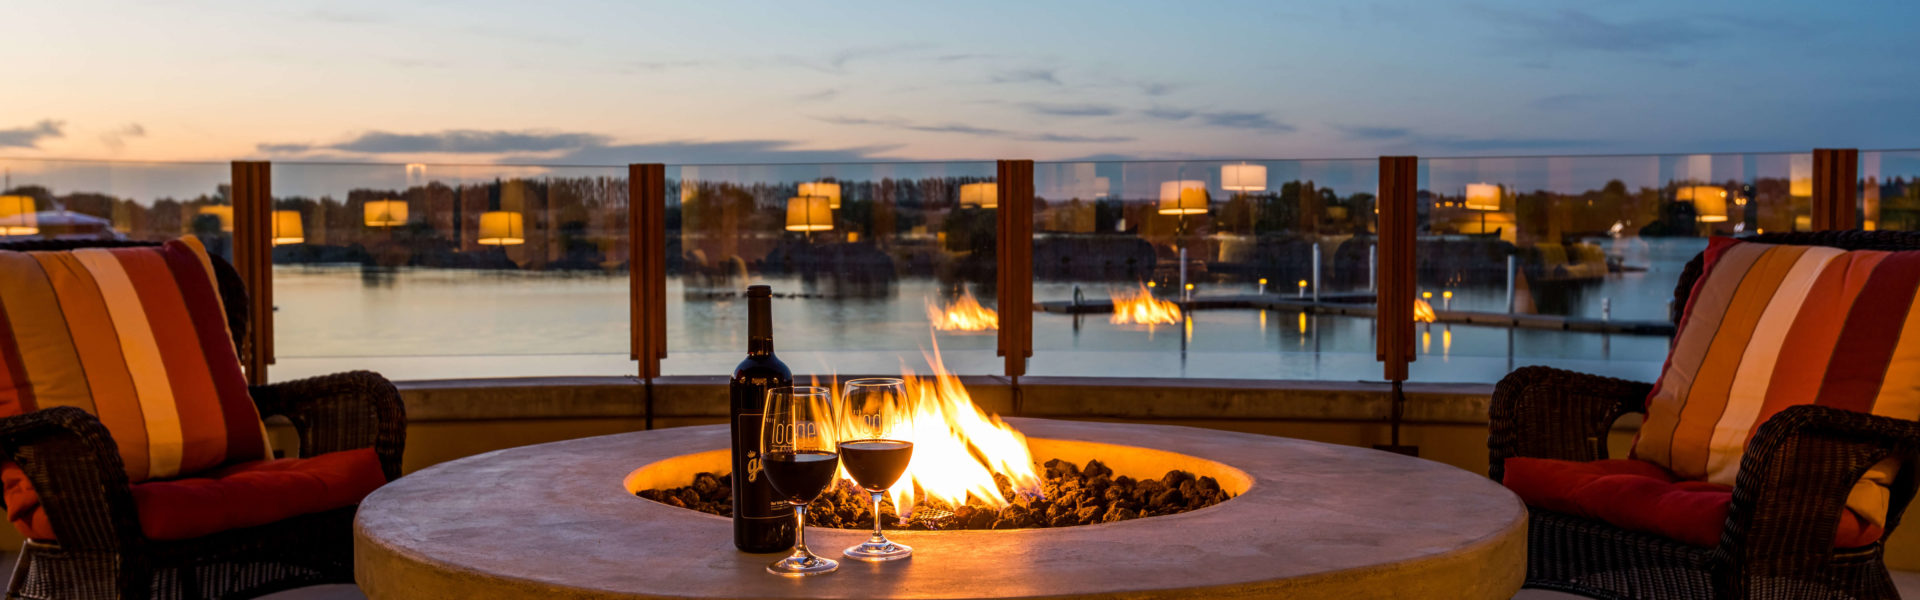 The Lodge at Columbia Point caters to guests on a Washington wine country escape